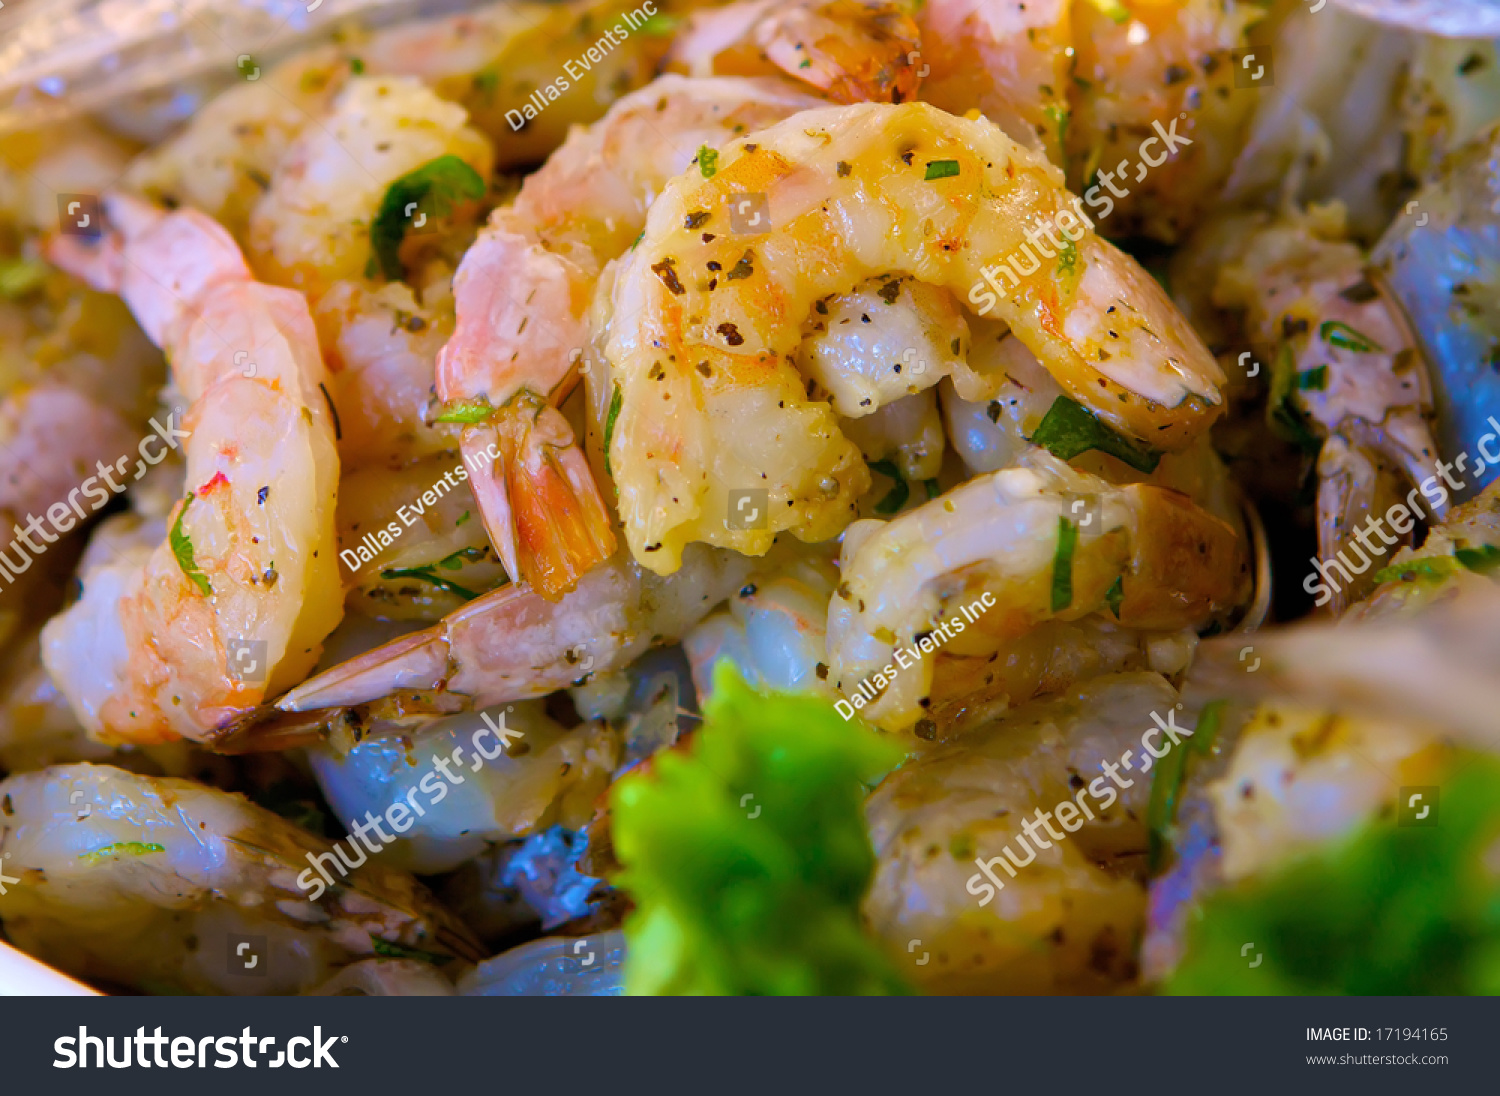 An Image Of Decadent Seasoned Sauteed Shrimp Stock Photo ...